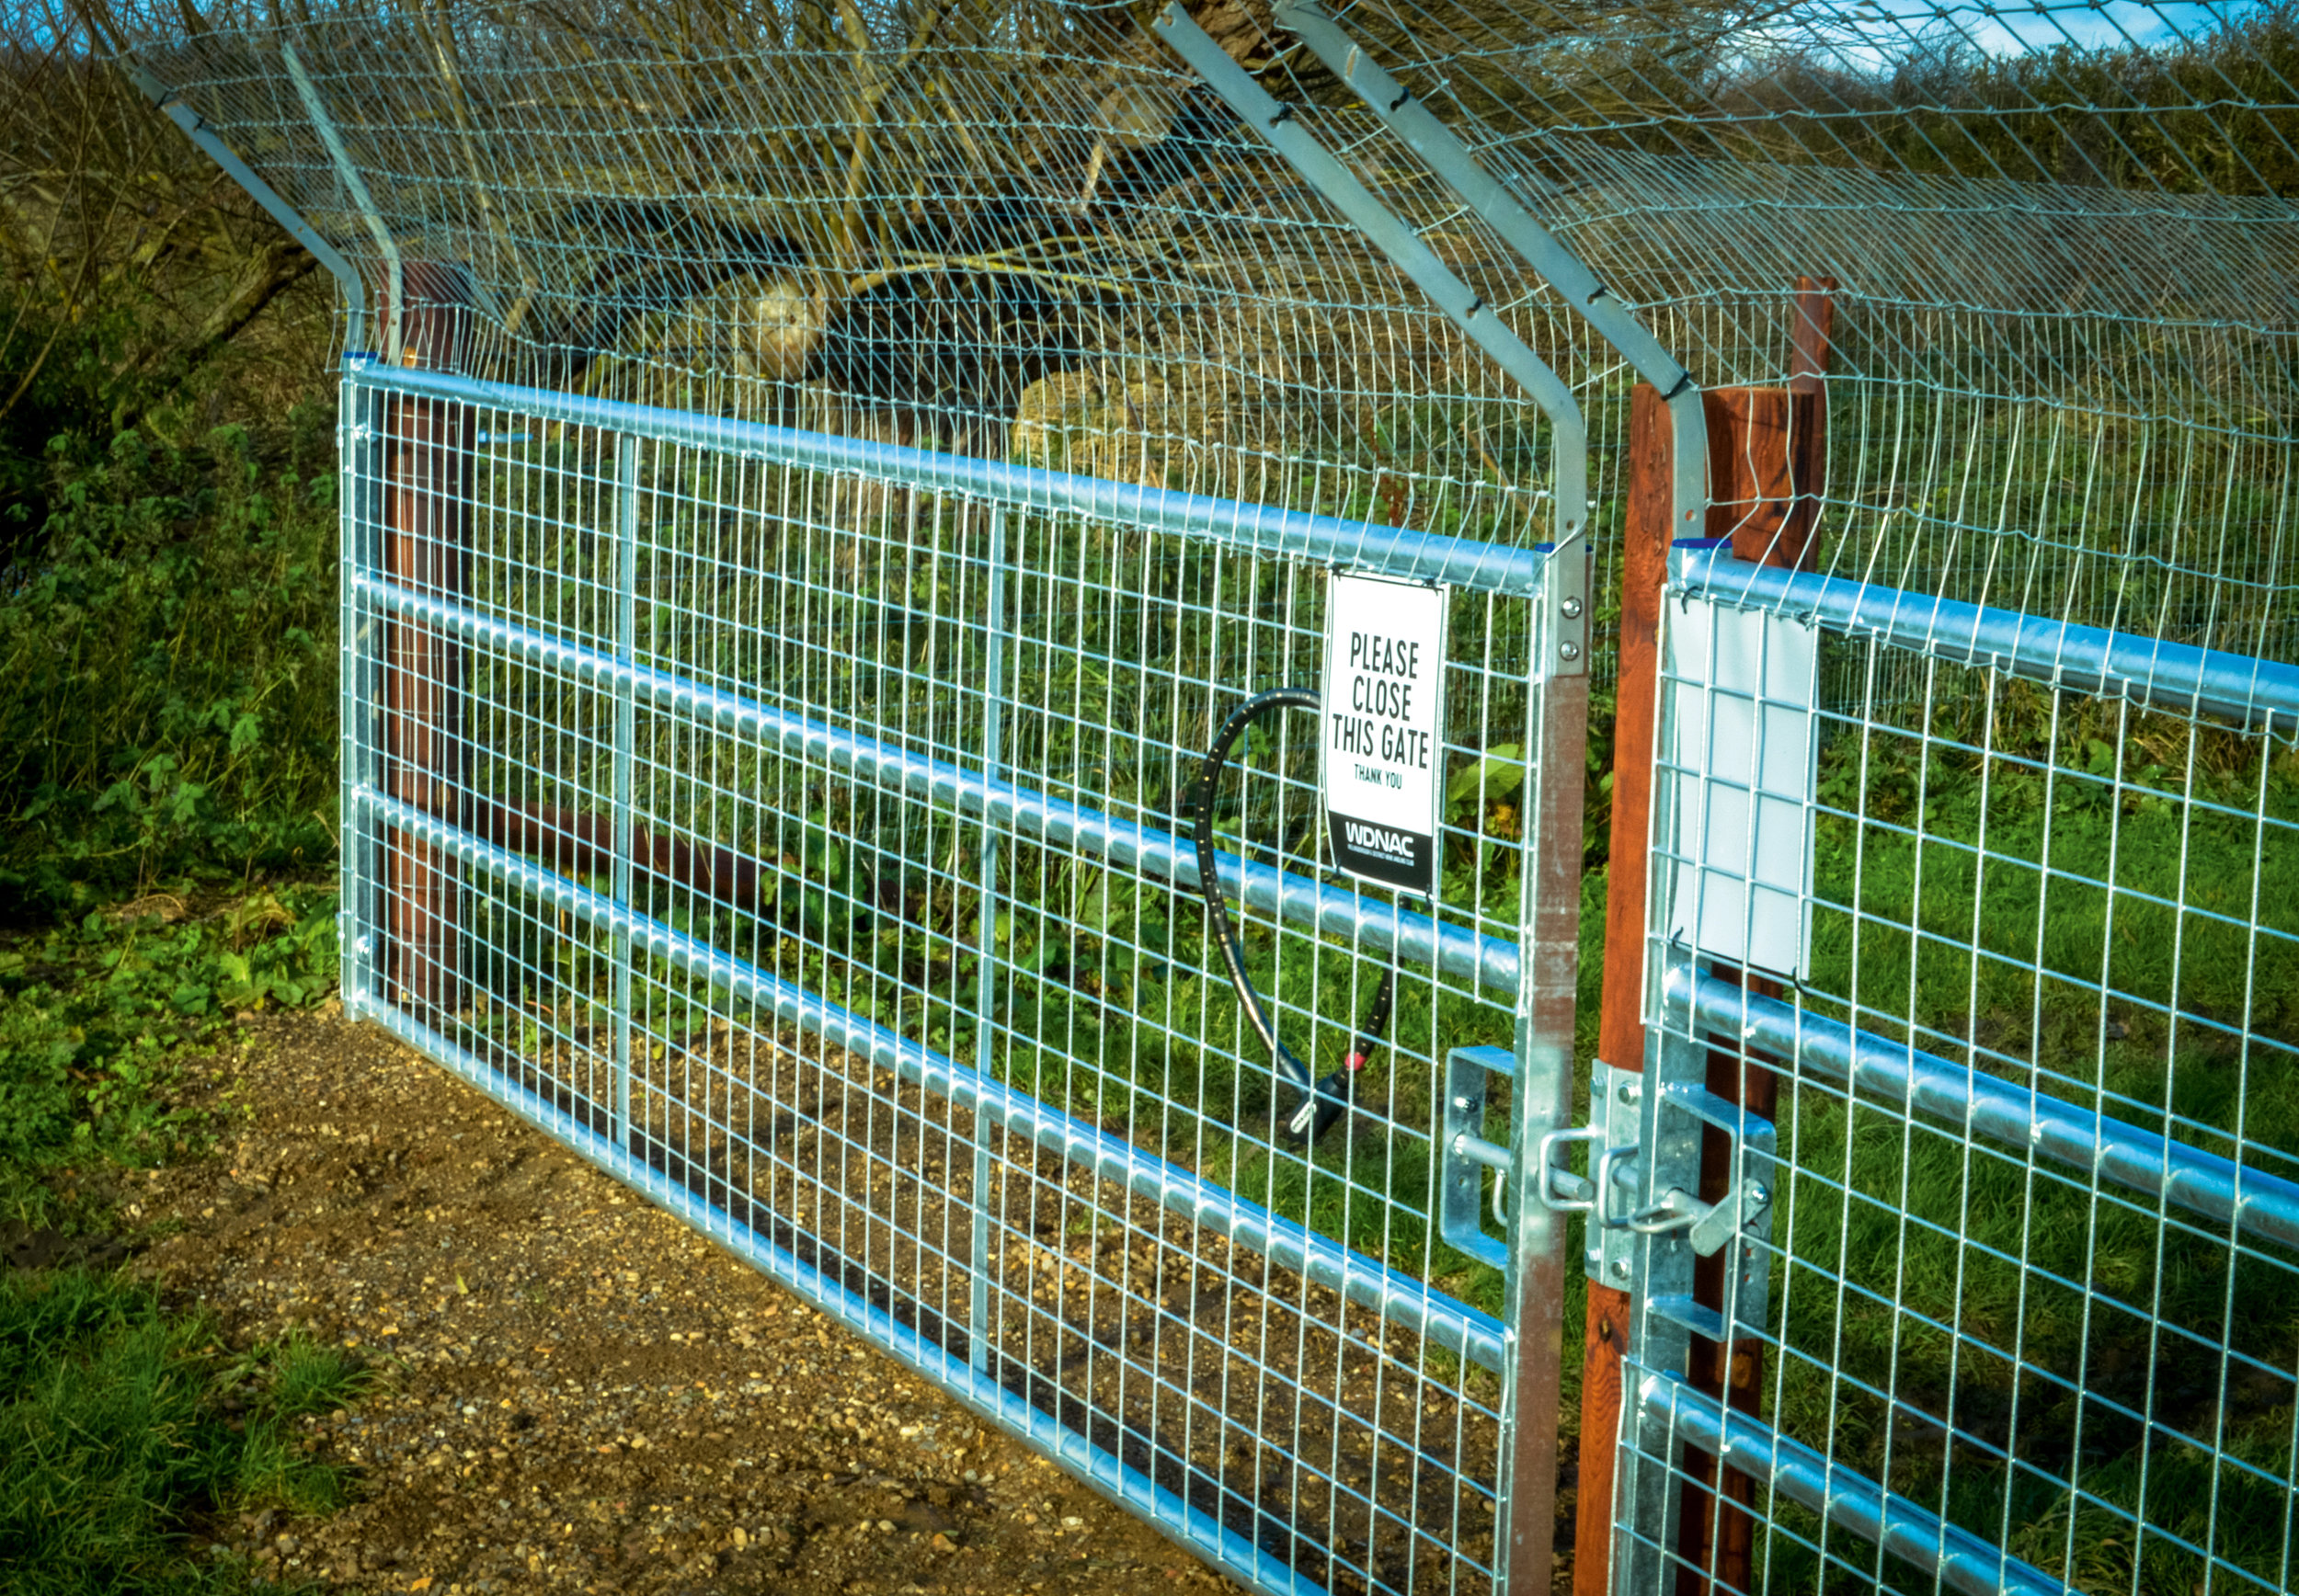 Vehicle and pedestrian gates, including a buried telegraph pole and a gravelled area to prevent burrowing